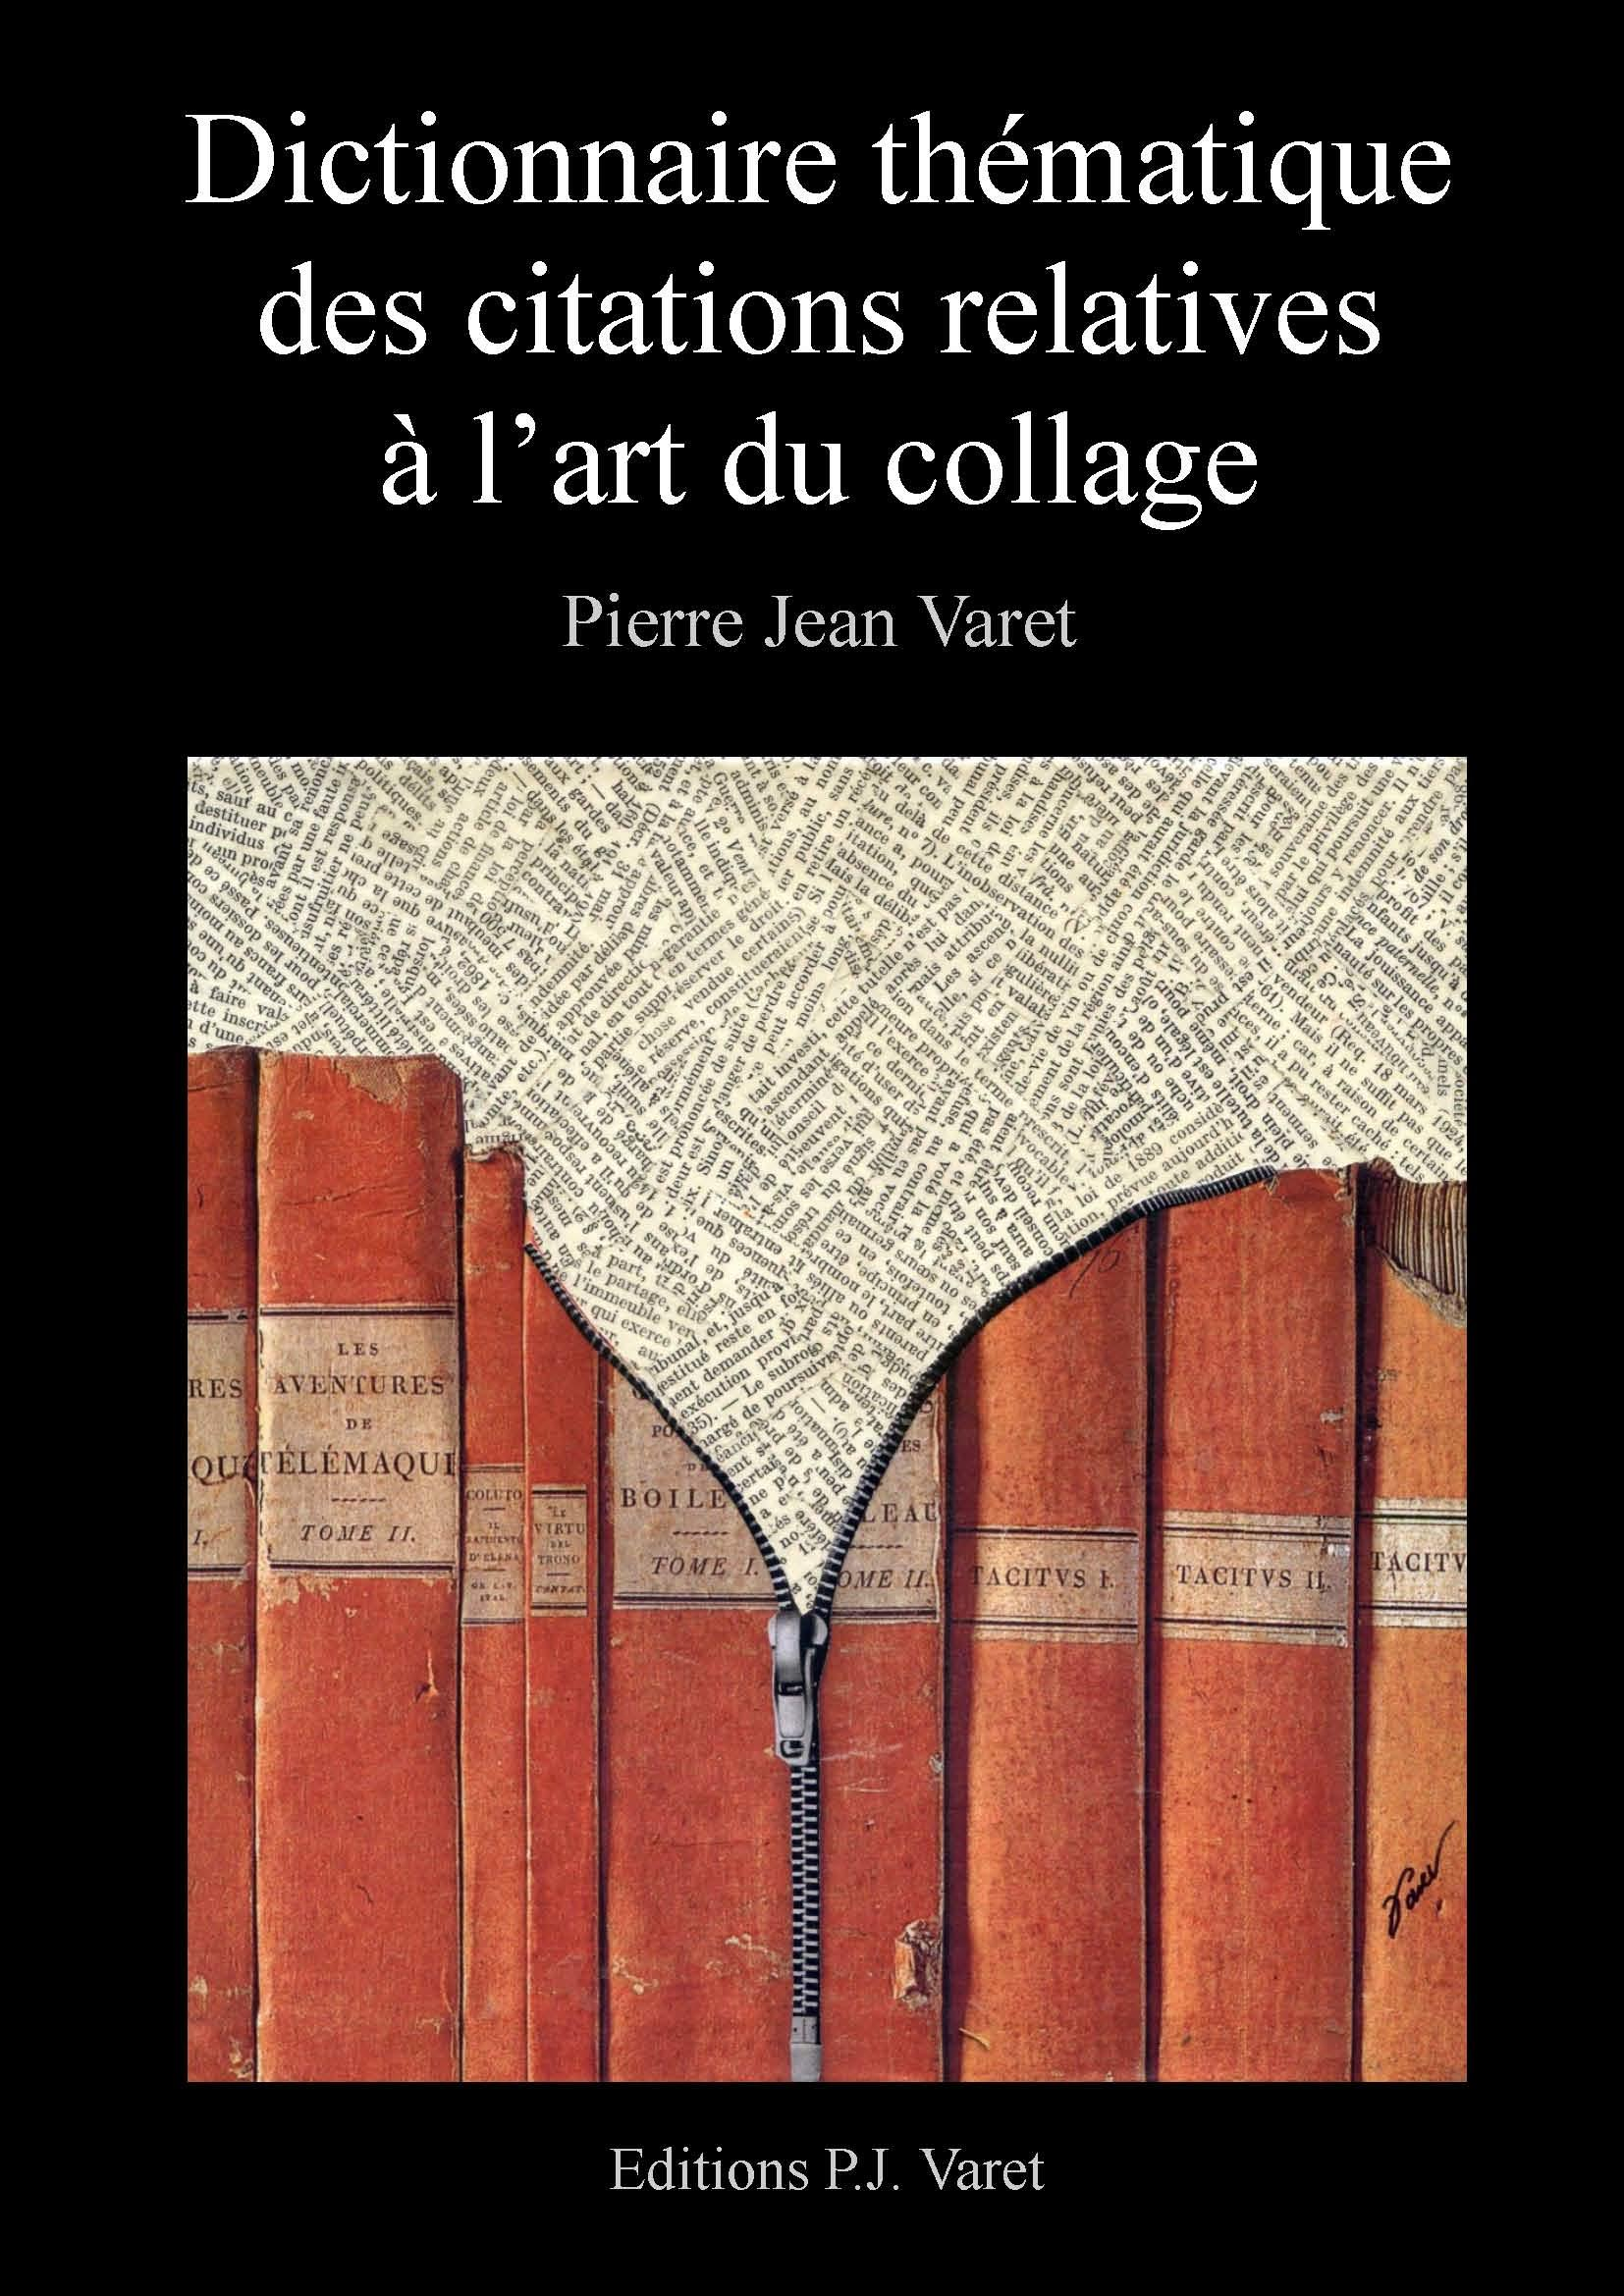 Dictionnaire thématique des citations relatives à l'art du collage